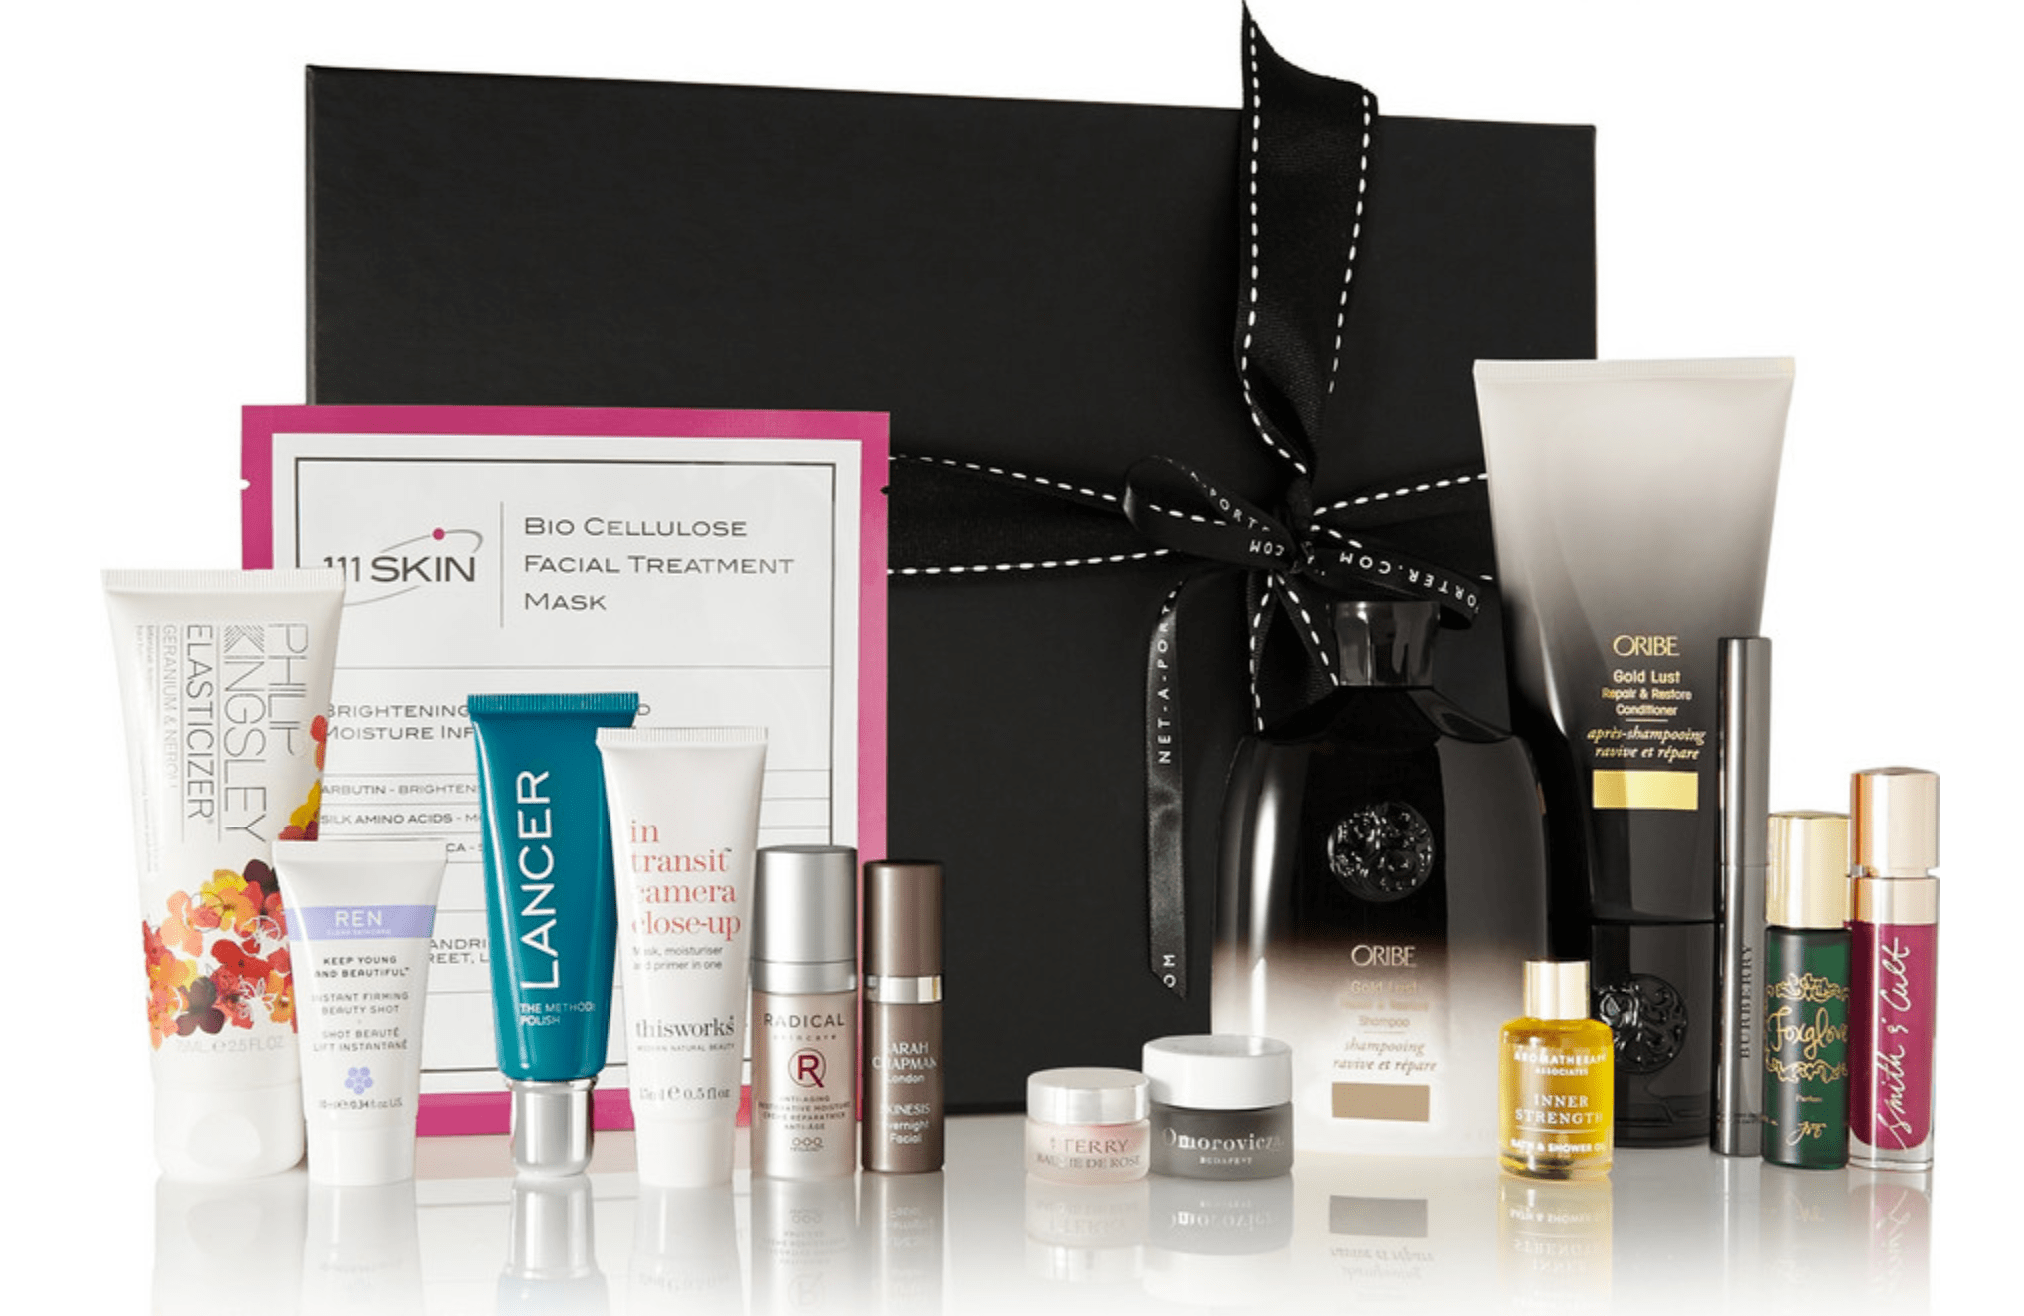 Le Meilleur Net A Porter Holiday Limited Edition Box Available Now Ce Mois Ci